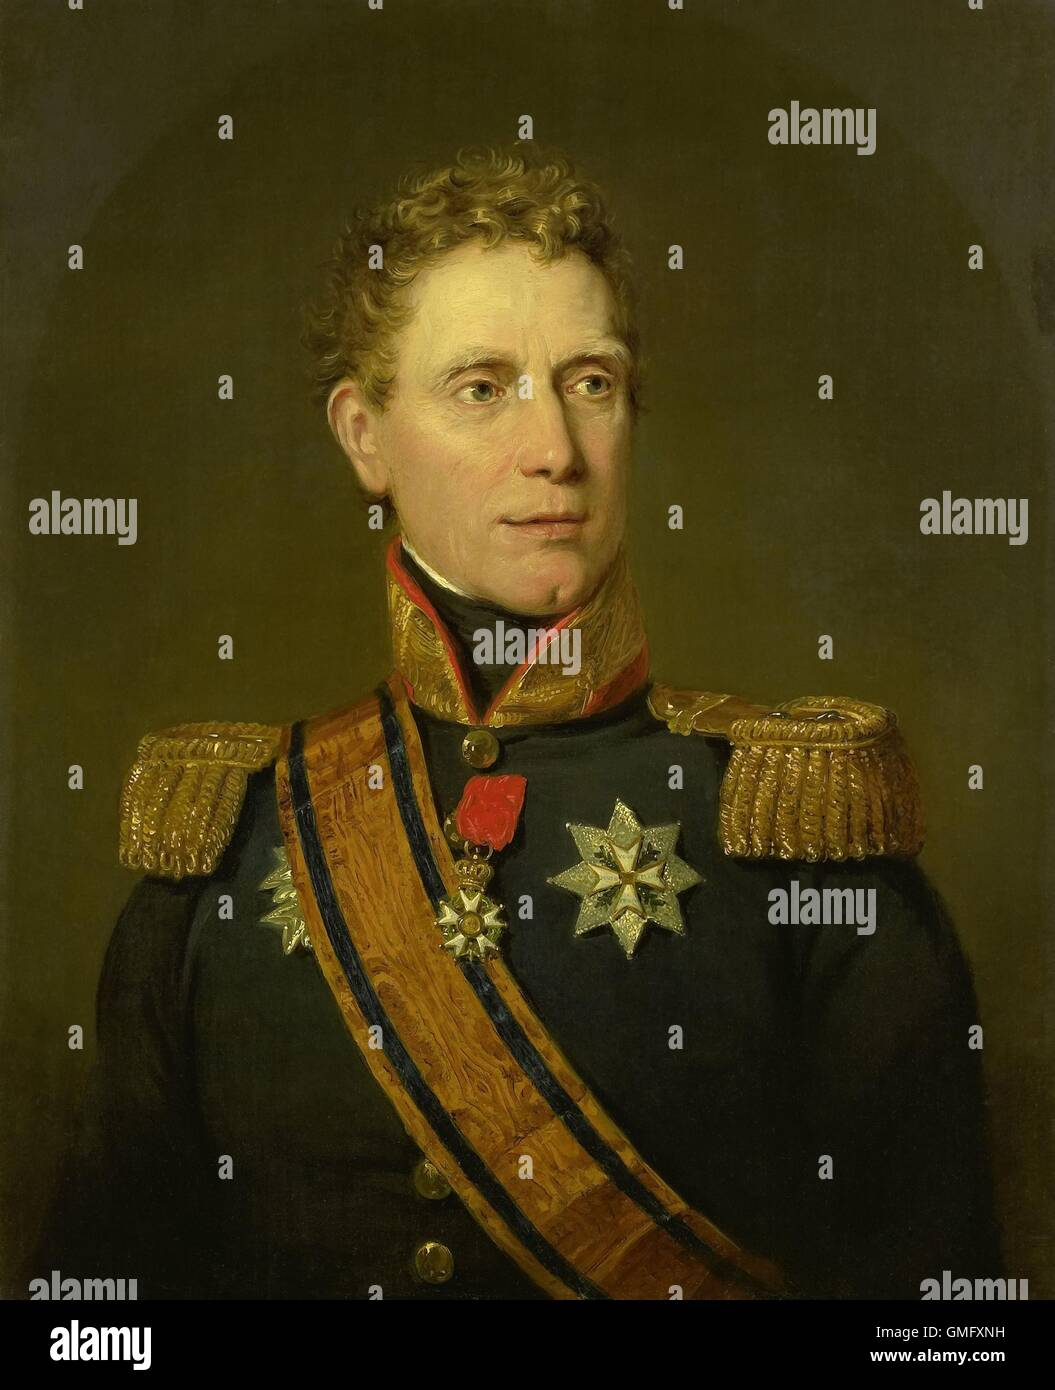 Jan Willem Janssens, Governor-General of the Dutch East Indies, 1811, by Jan Willem Pieneman, Dutch painting, oil - Stock Image